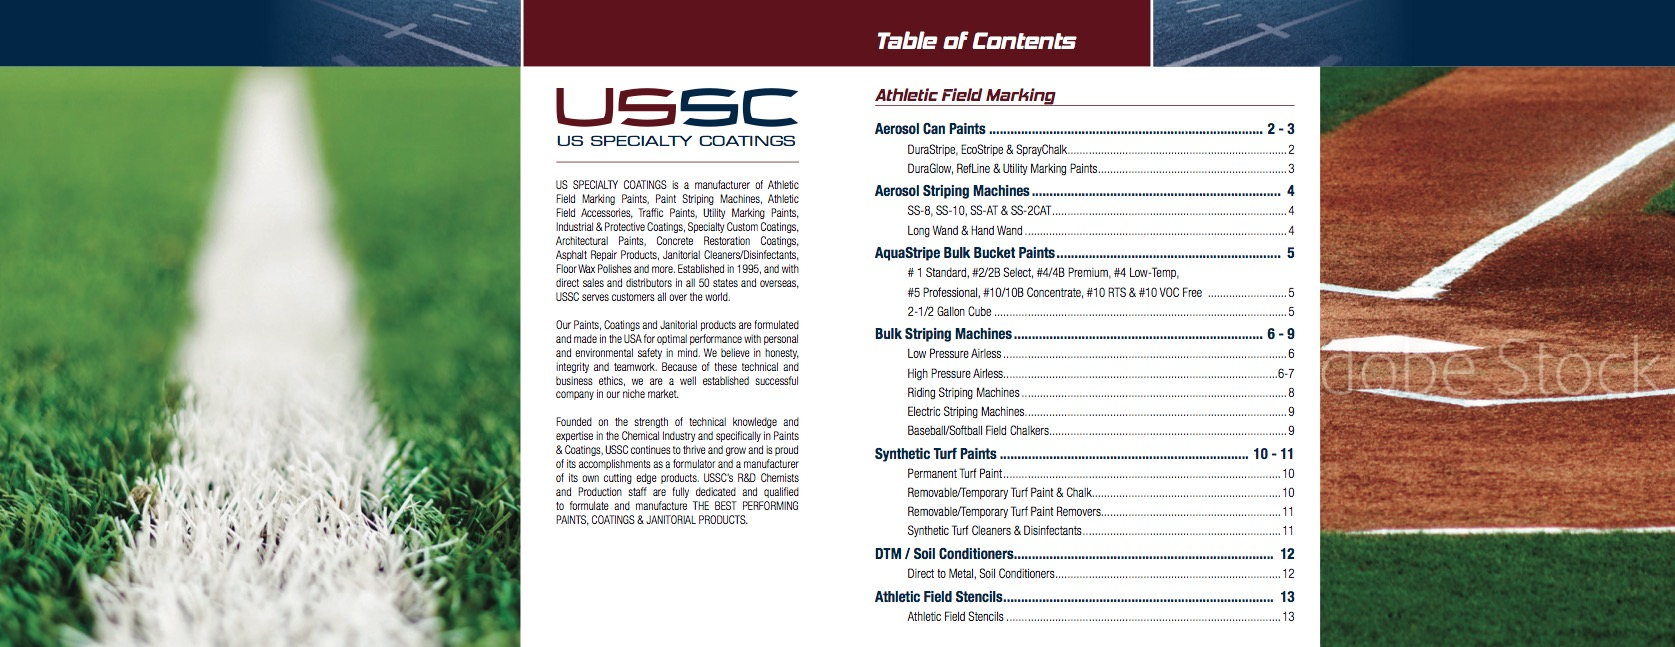 ussc cat spread1